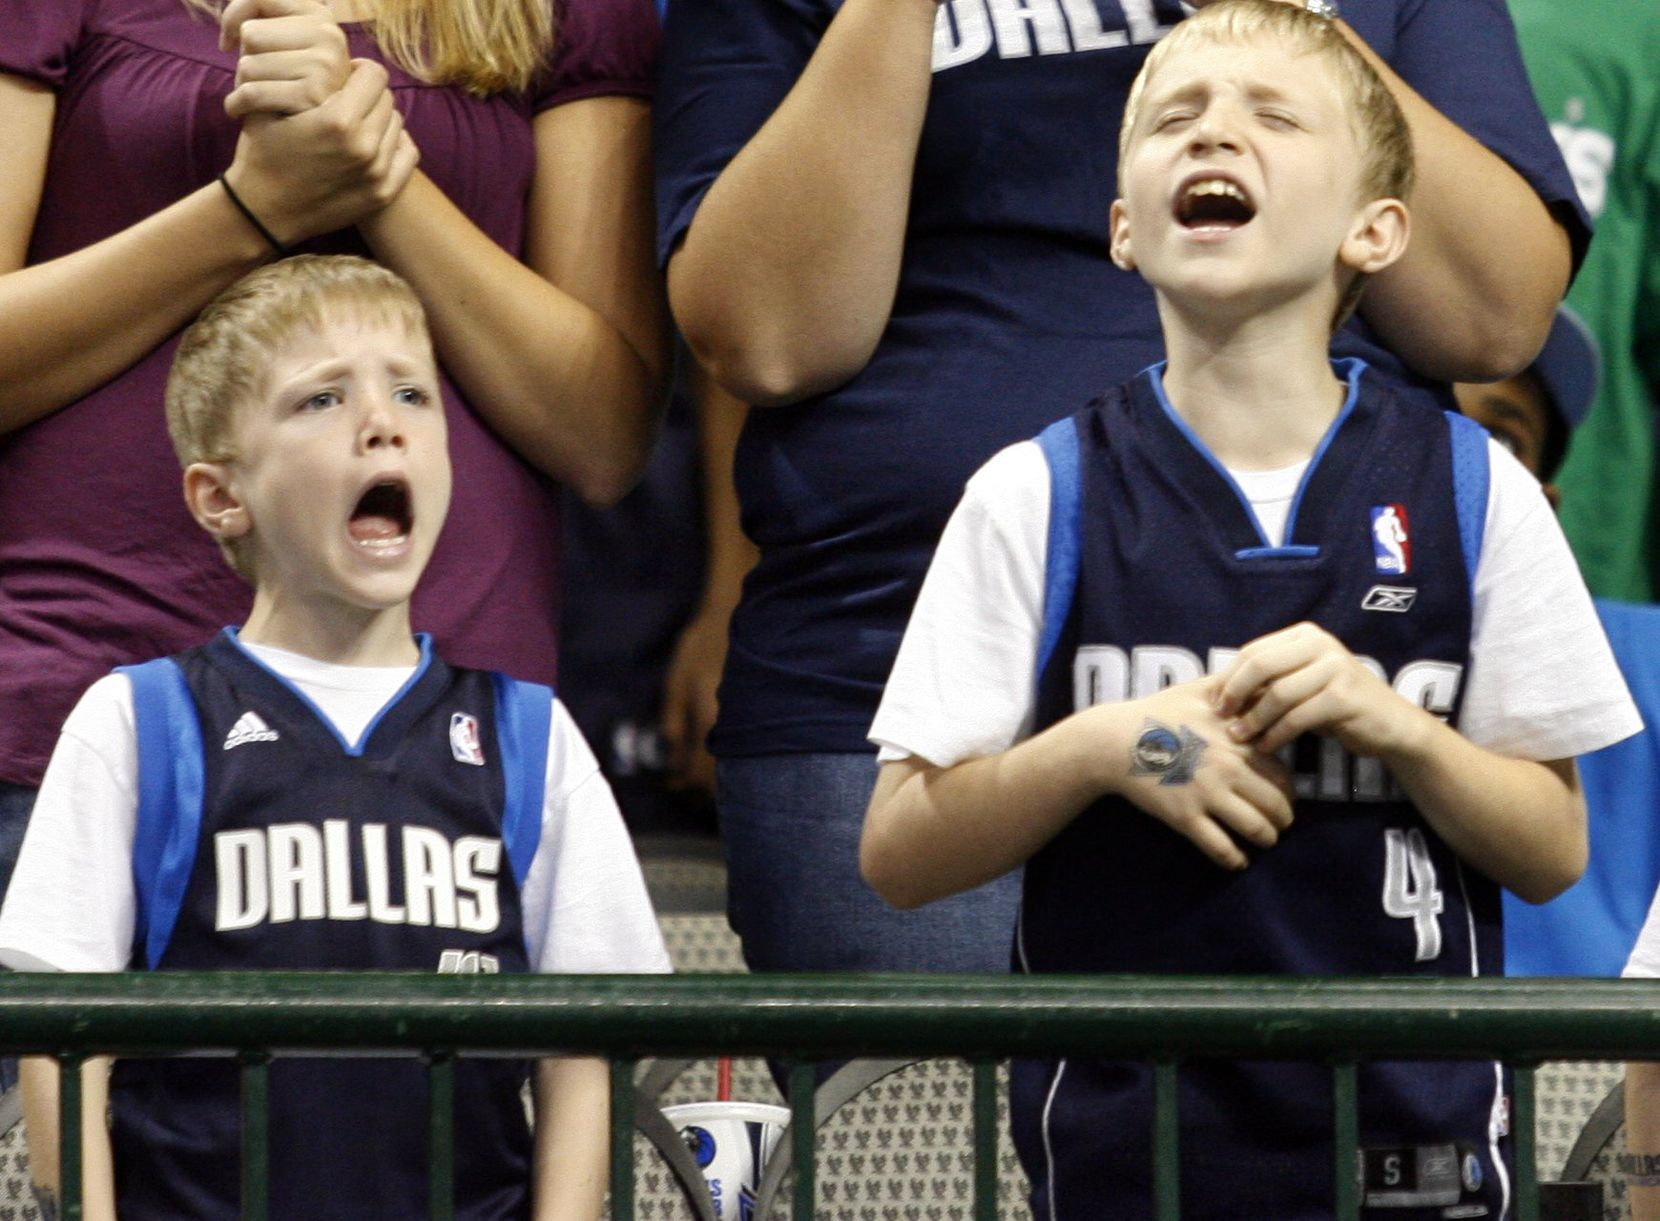 Brothers Anthony (left) and Austin Cooley  of Mesquite learned early to cheer on the hometown team.